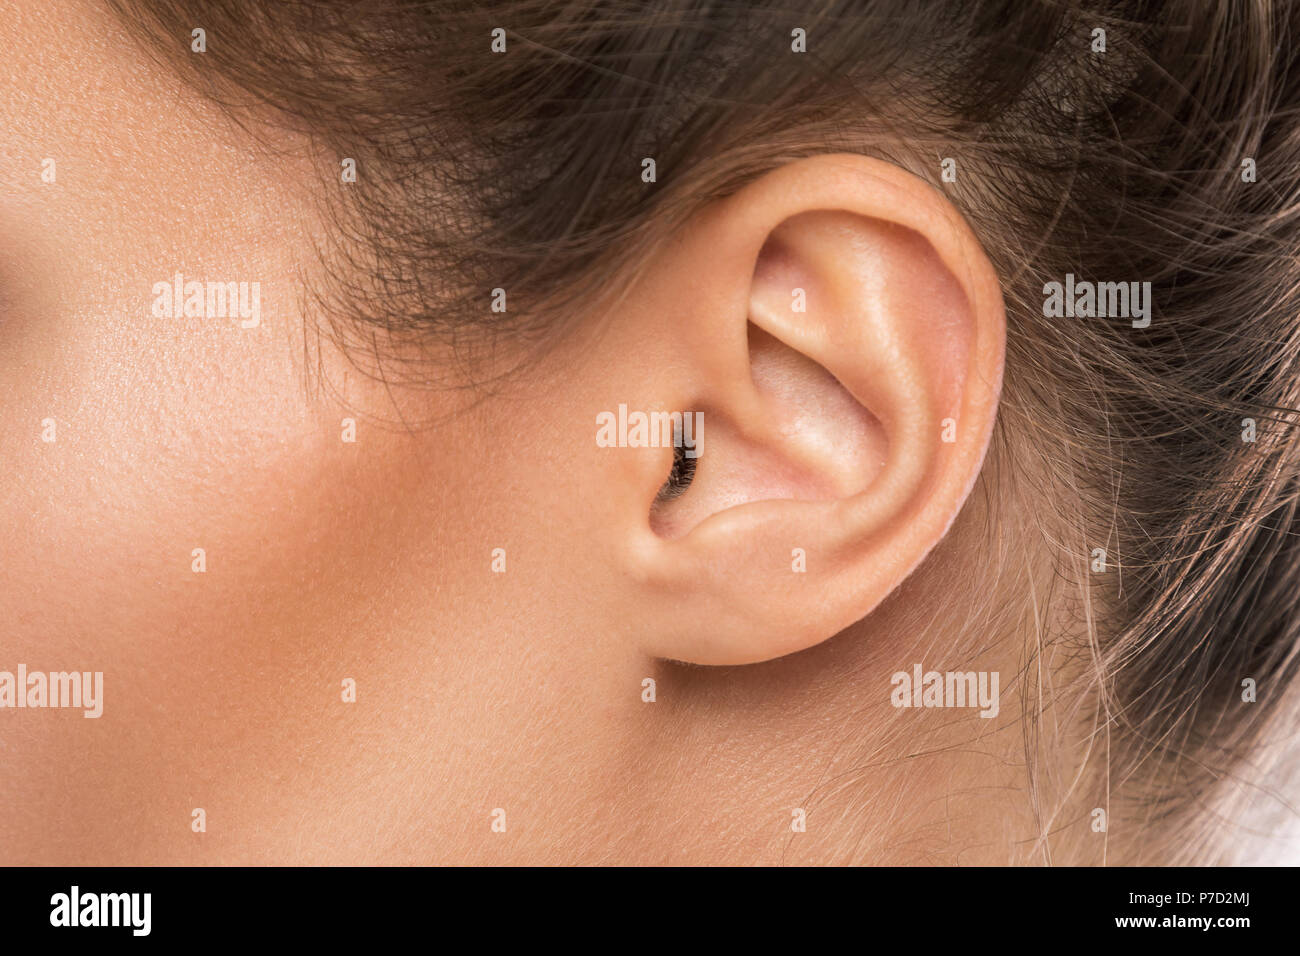 Close-up of female ear - Stock Image